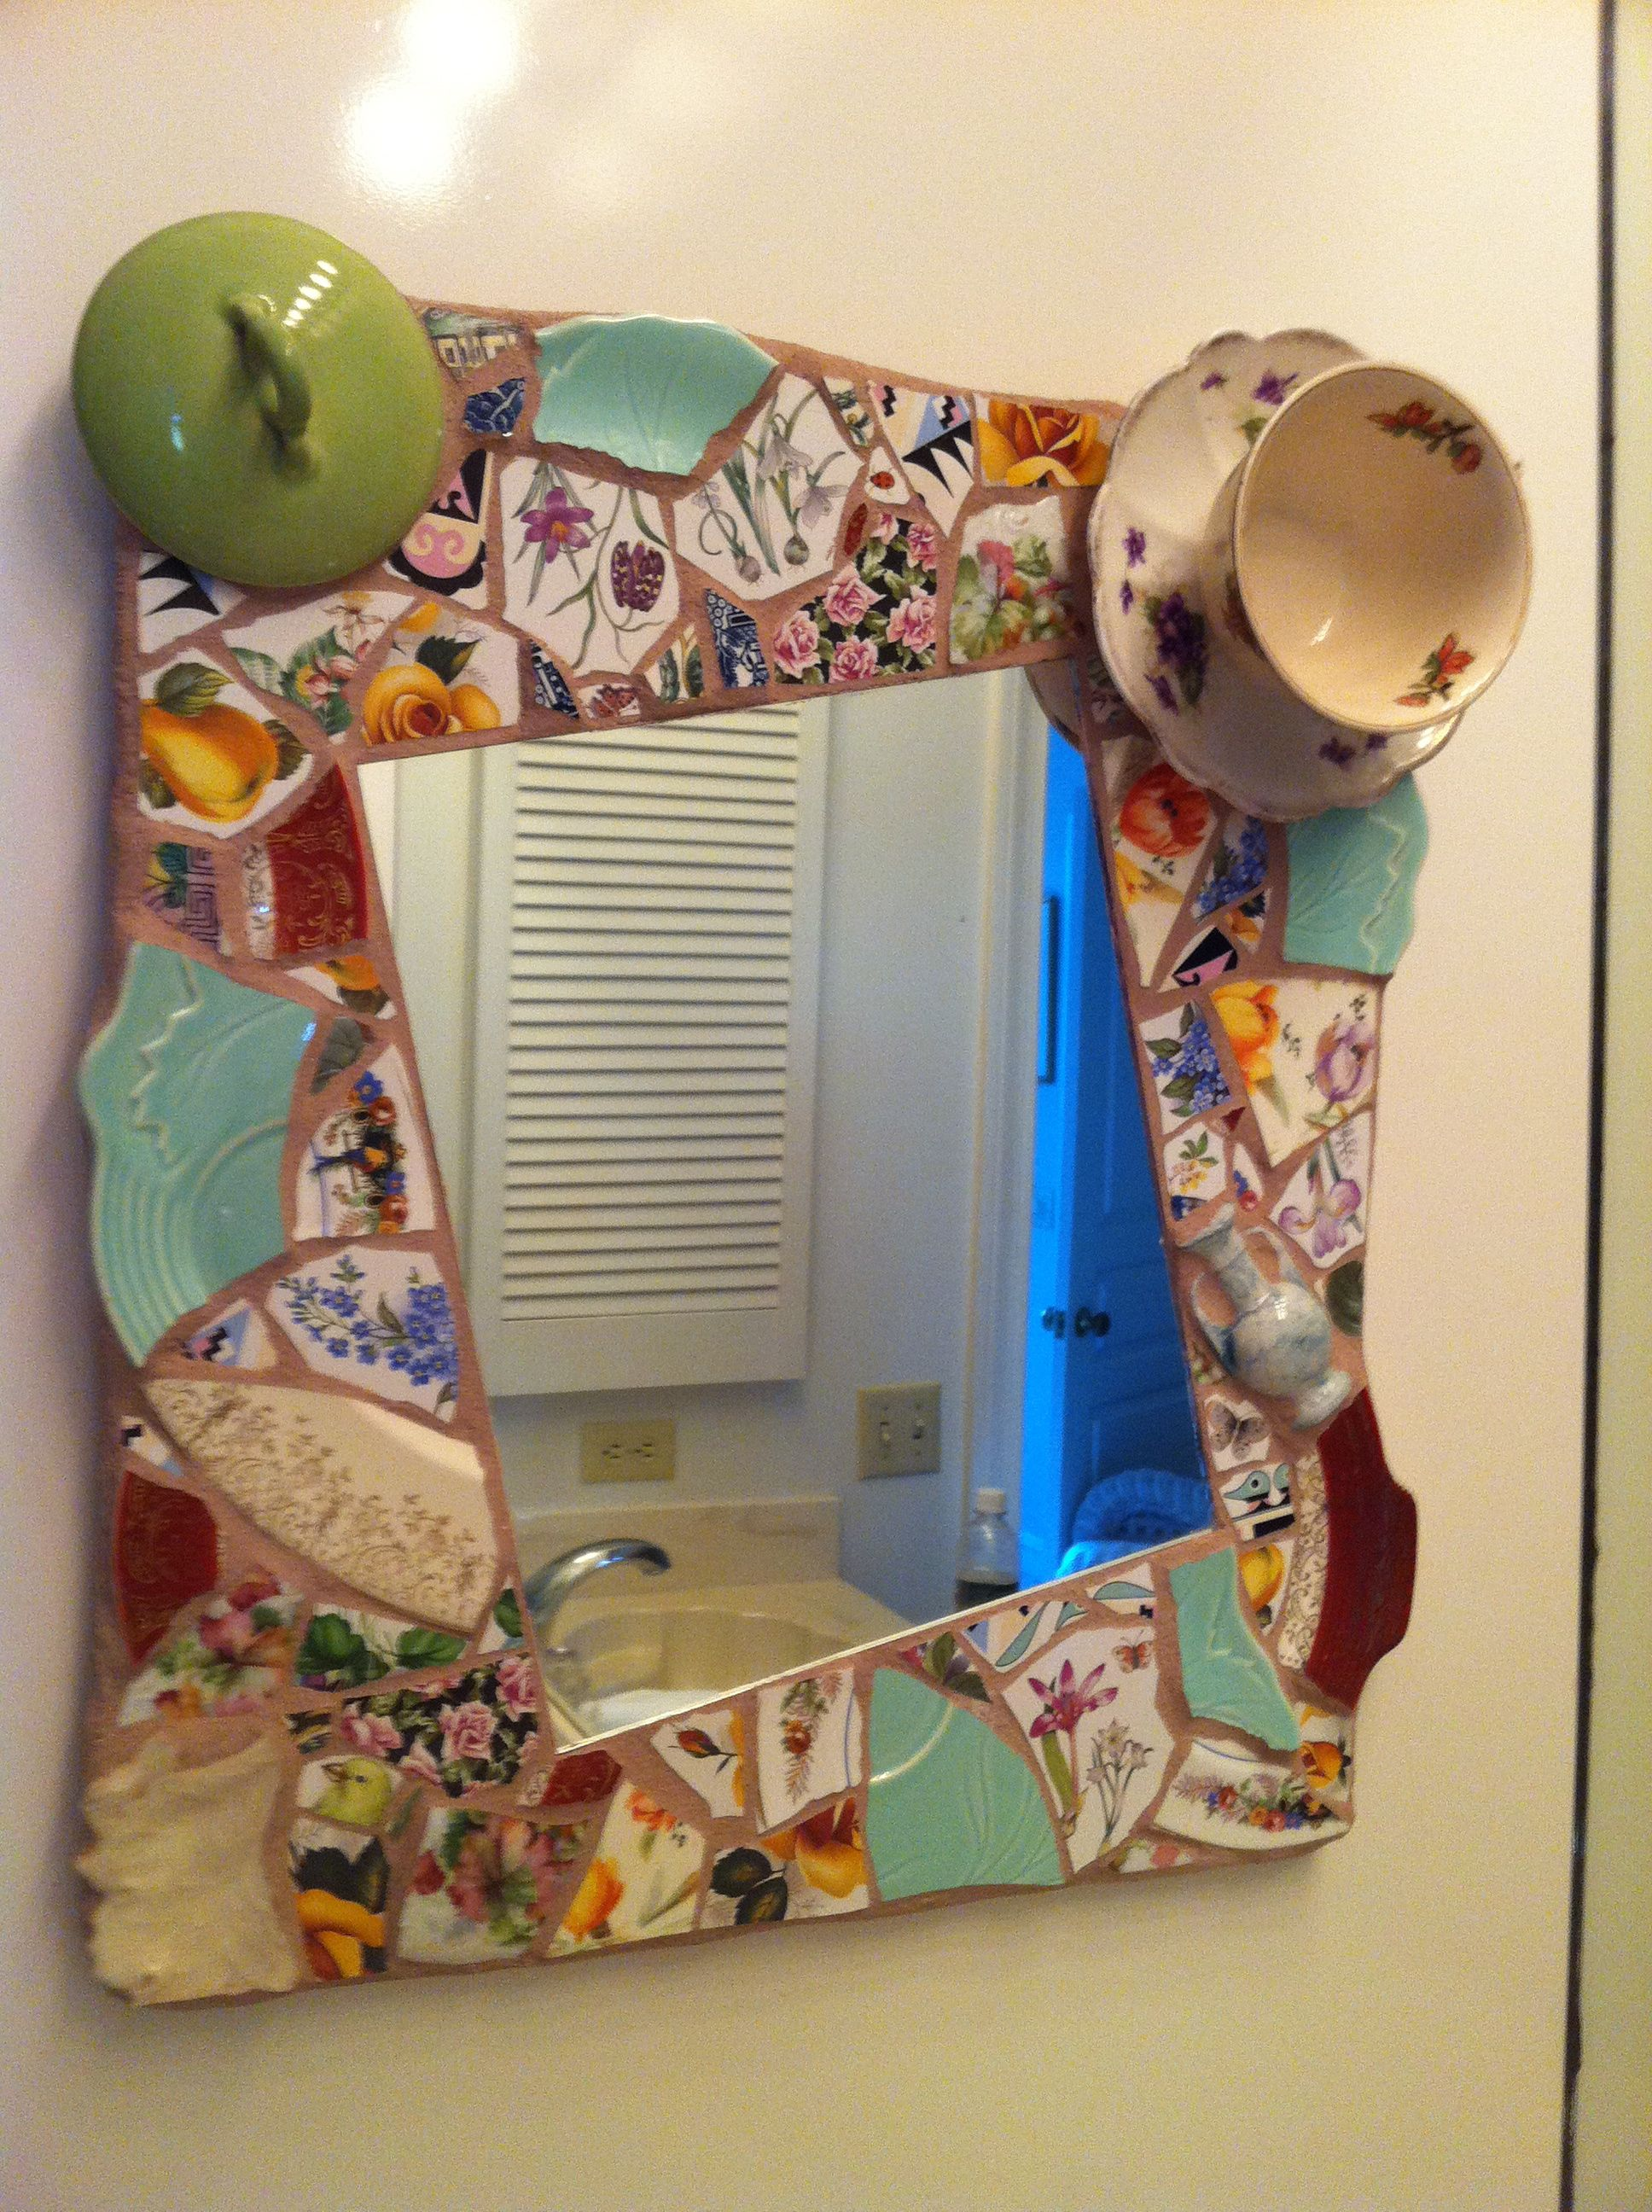 Broken dishes and an entire cup and saucer frame a mirror